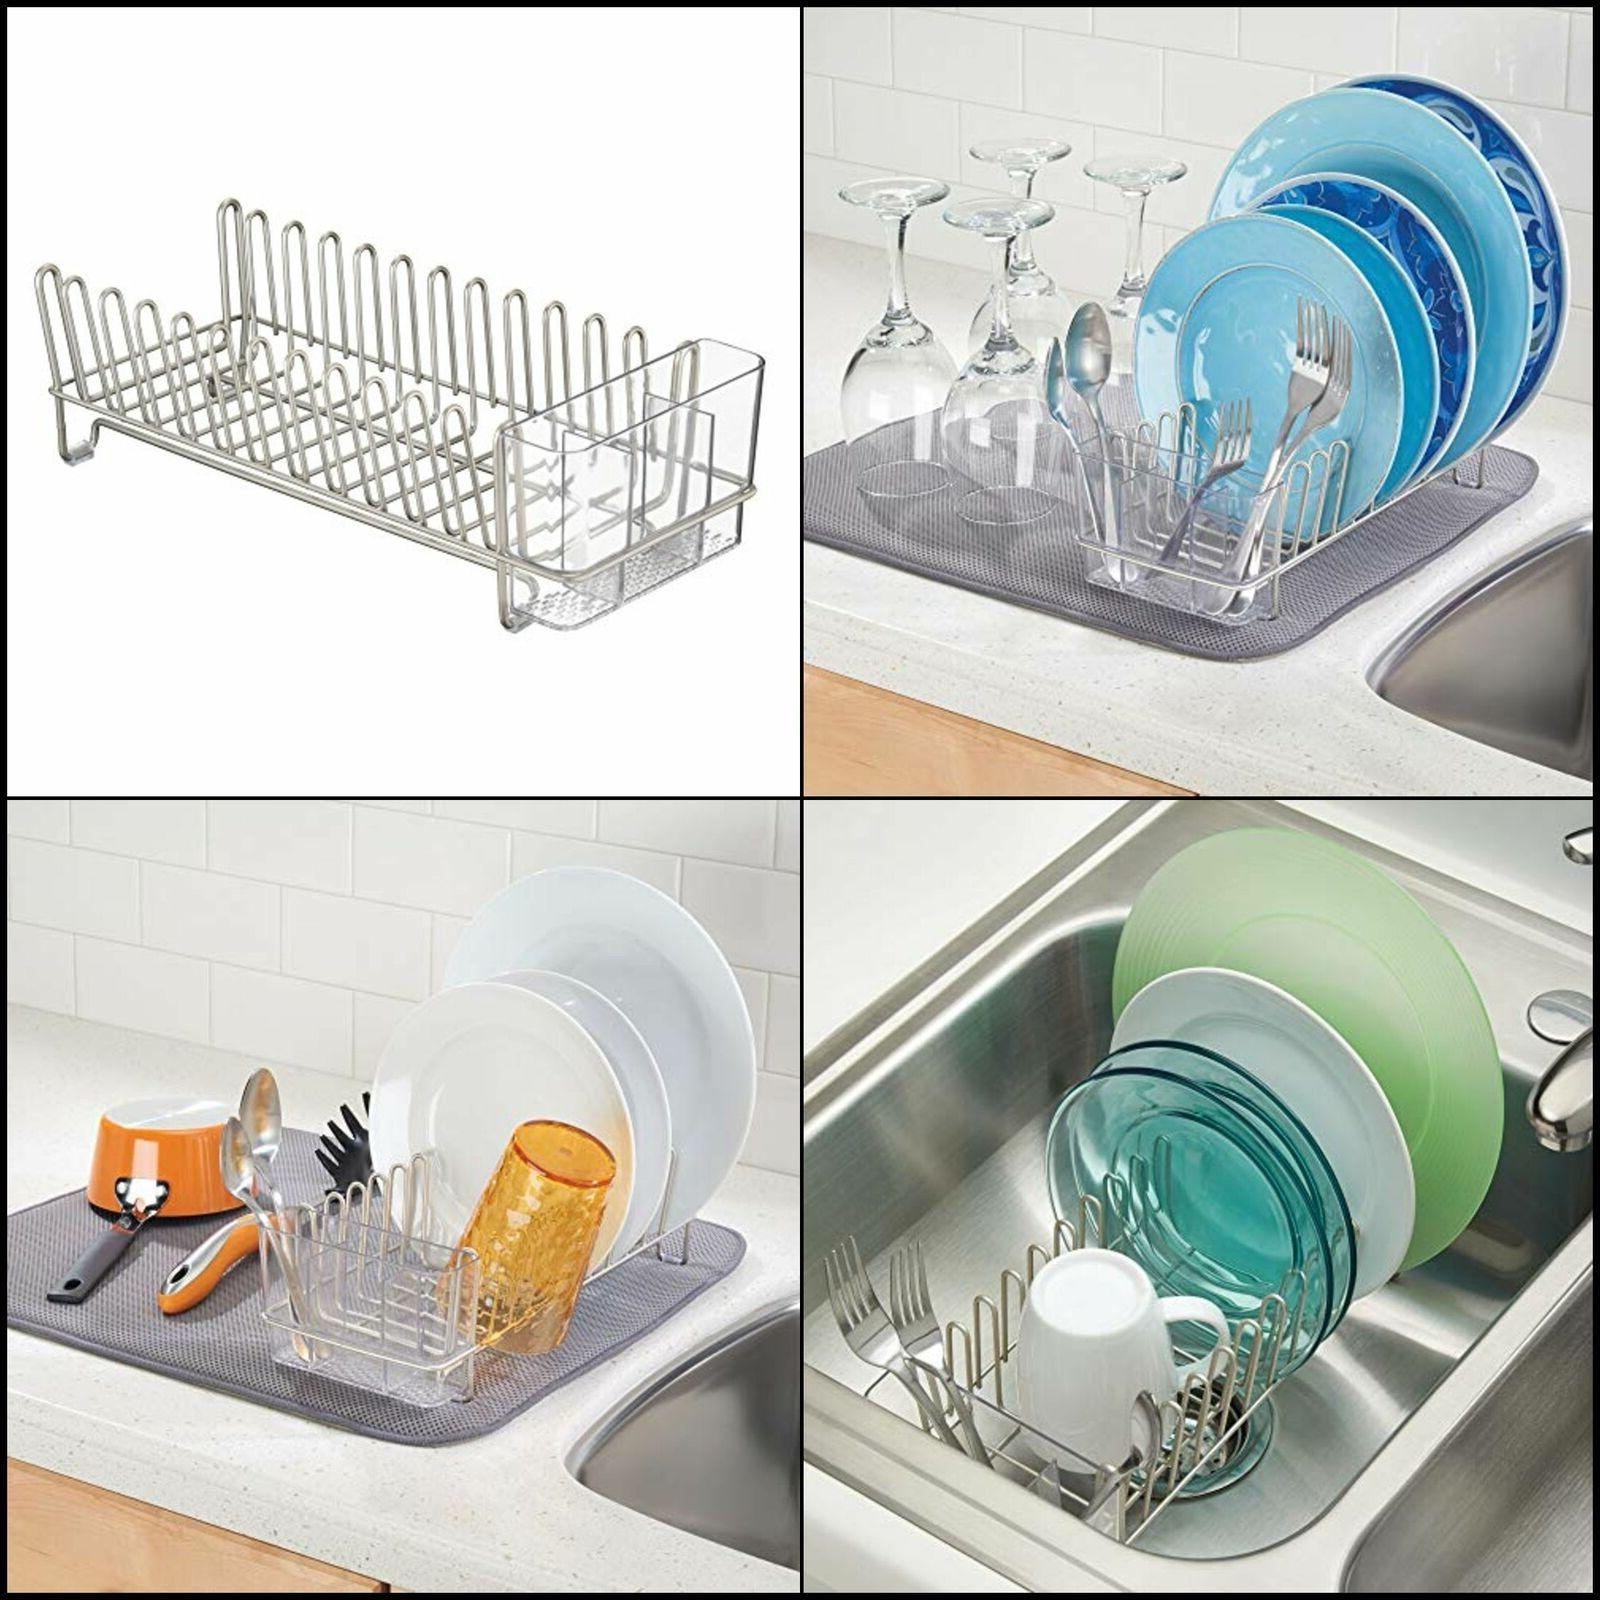 mDesign Compact Countertop, Sink Dish and Silicone Drying - Drain Dry Wine Glasses, Dishes - Satin Clear Heat-Safe Mat